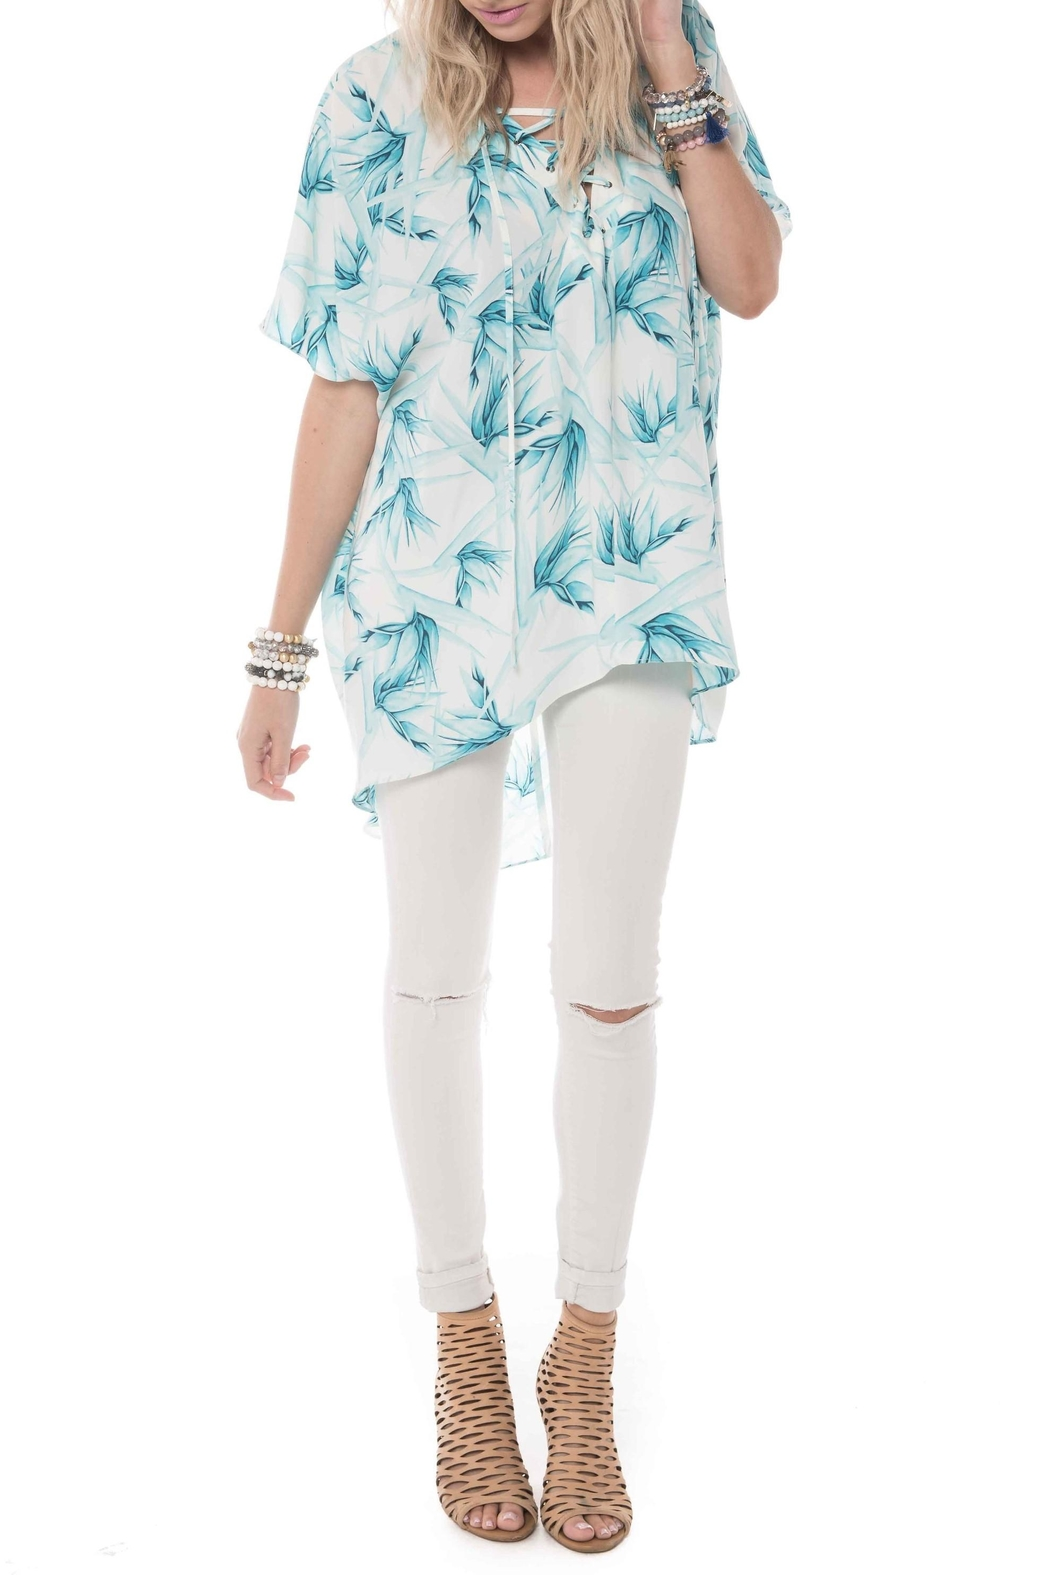 Buddy Love Lotus Tunic Top - Front Full Image